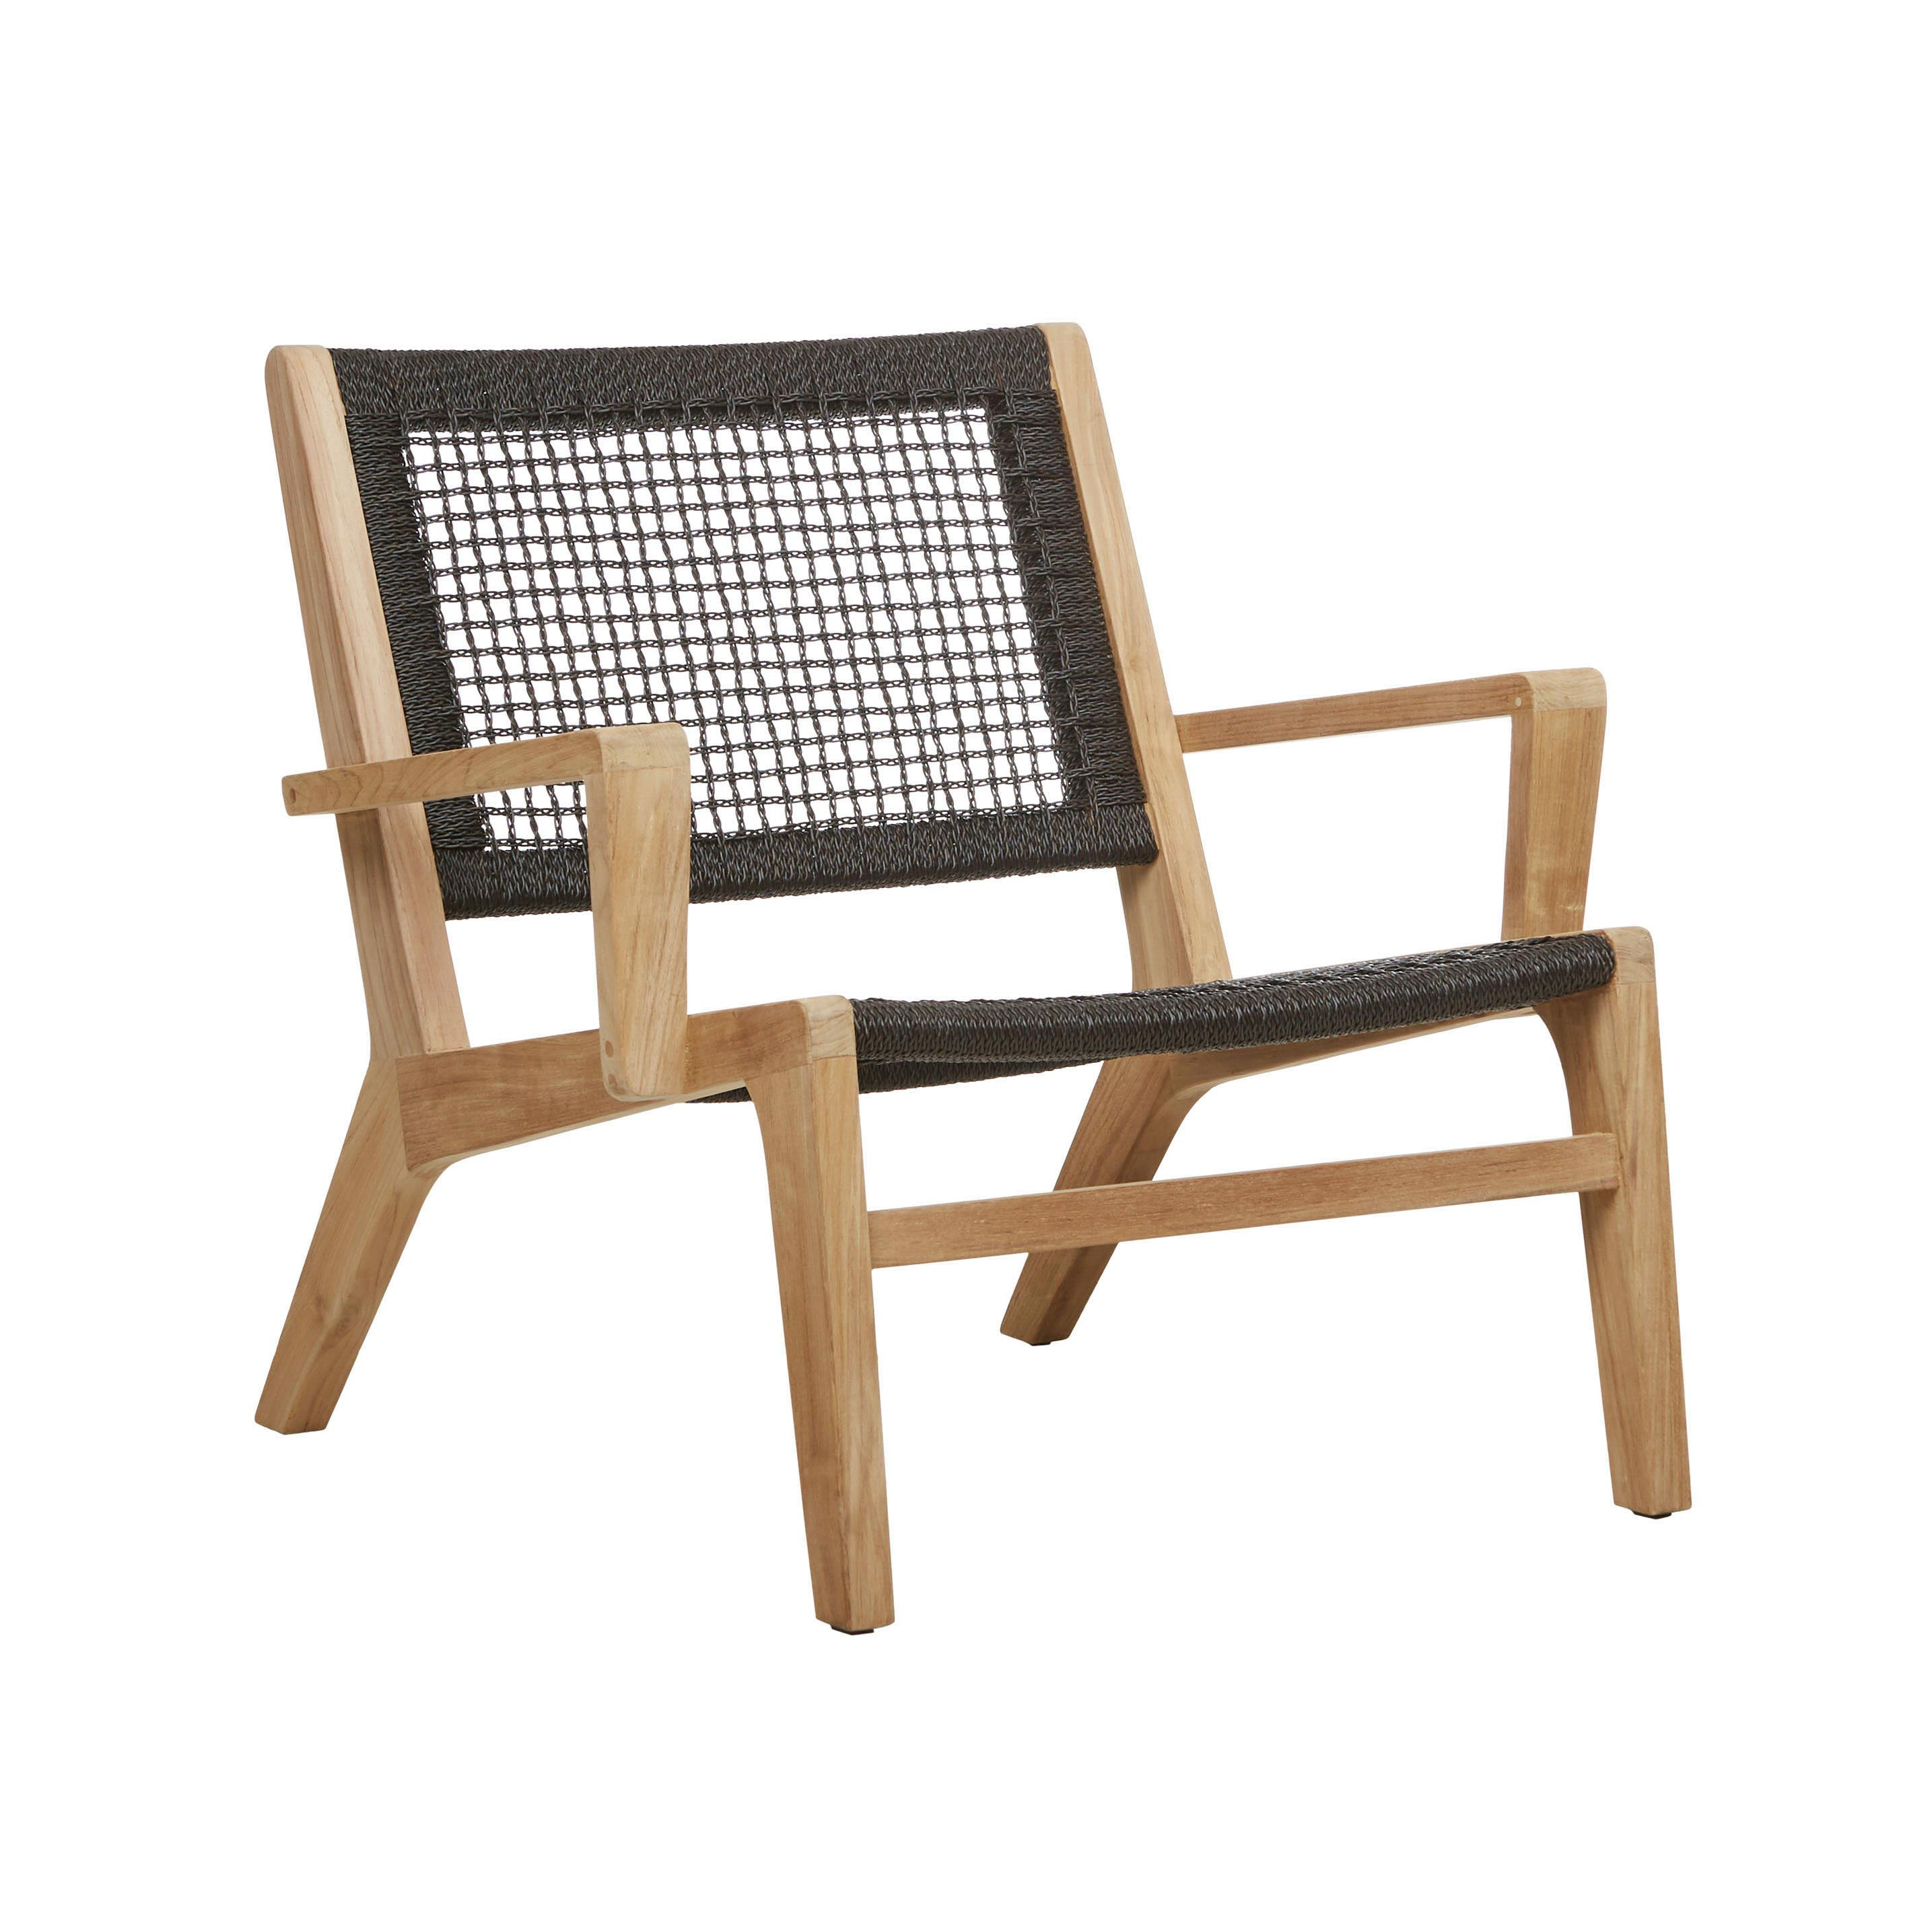 Furniture Hero-Images Occasional-Chairs haven-rope-02